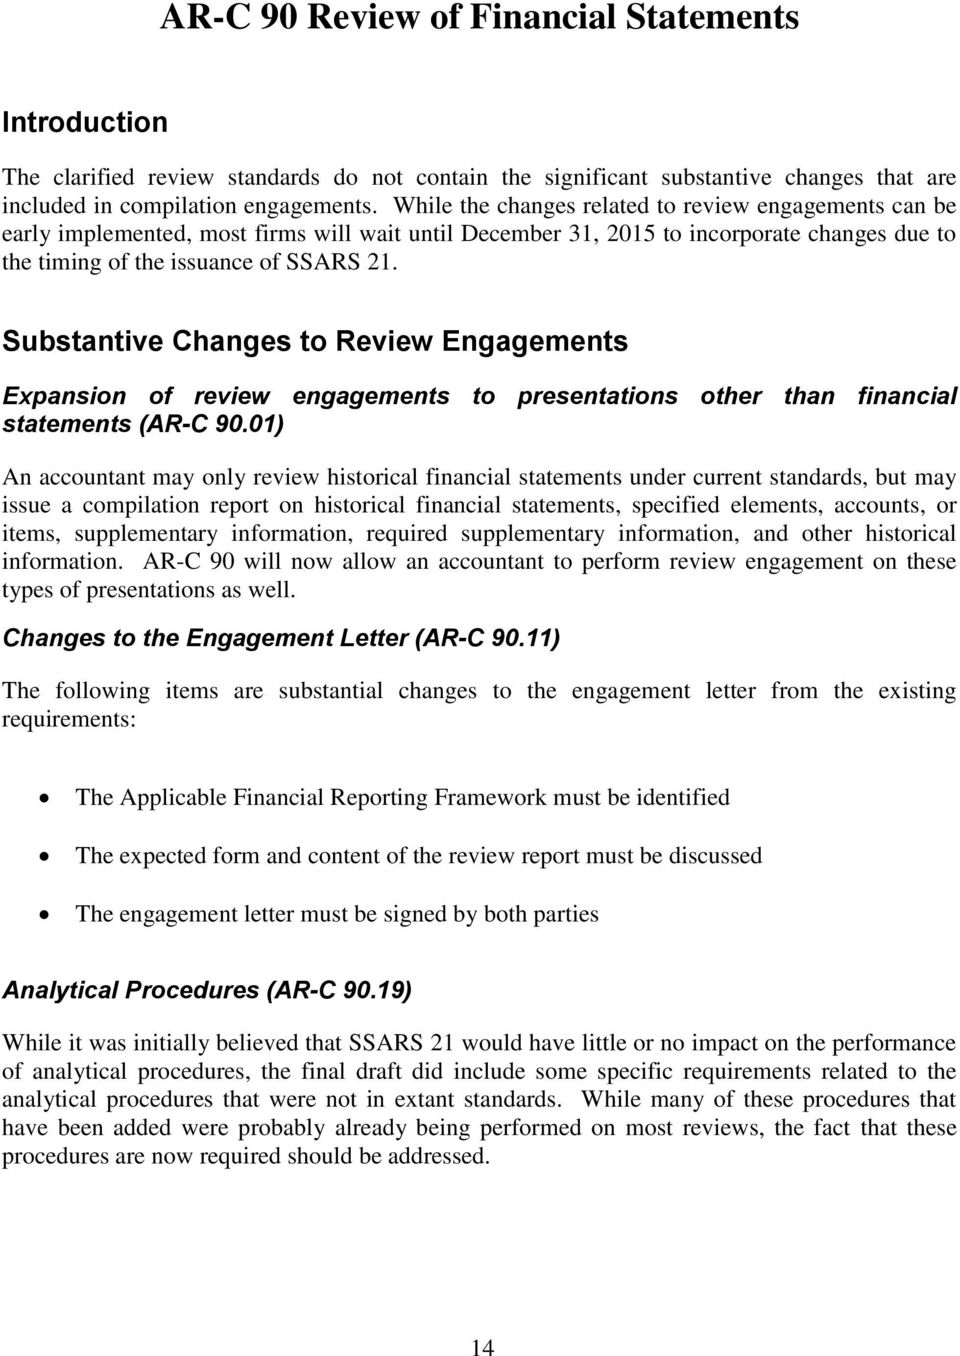 Substantive Changes to Review Engagements Expansion of review engagements to presentations other than financial statements (AR-C 90.